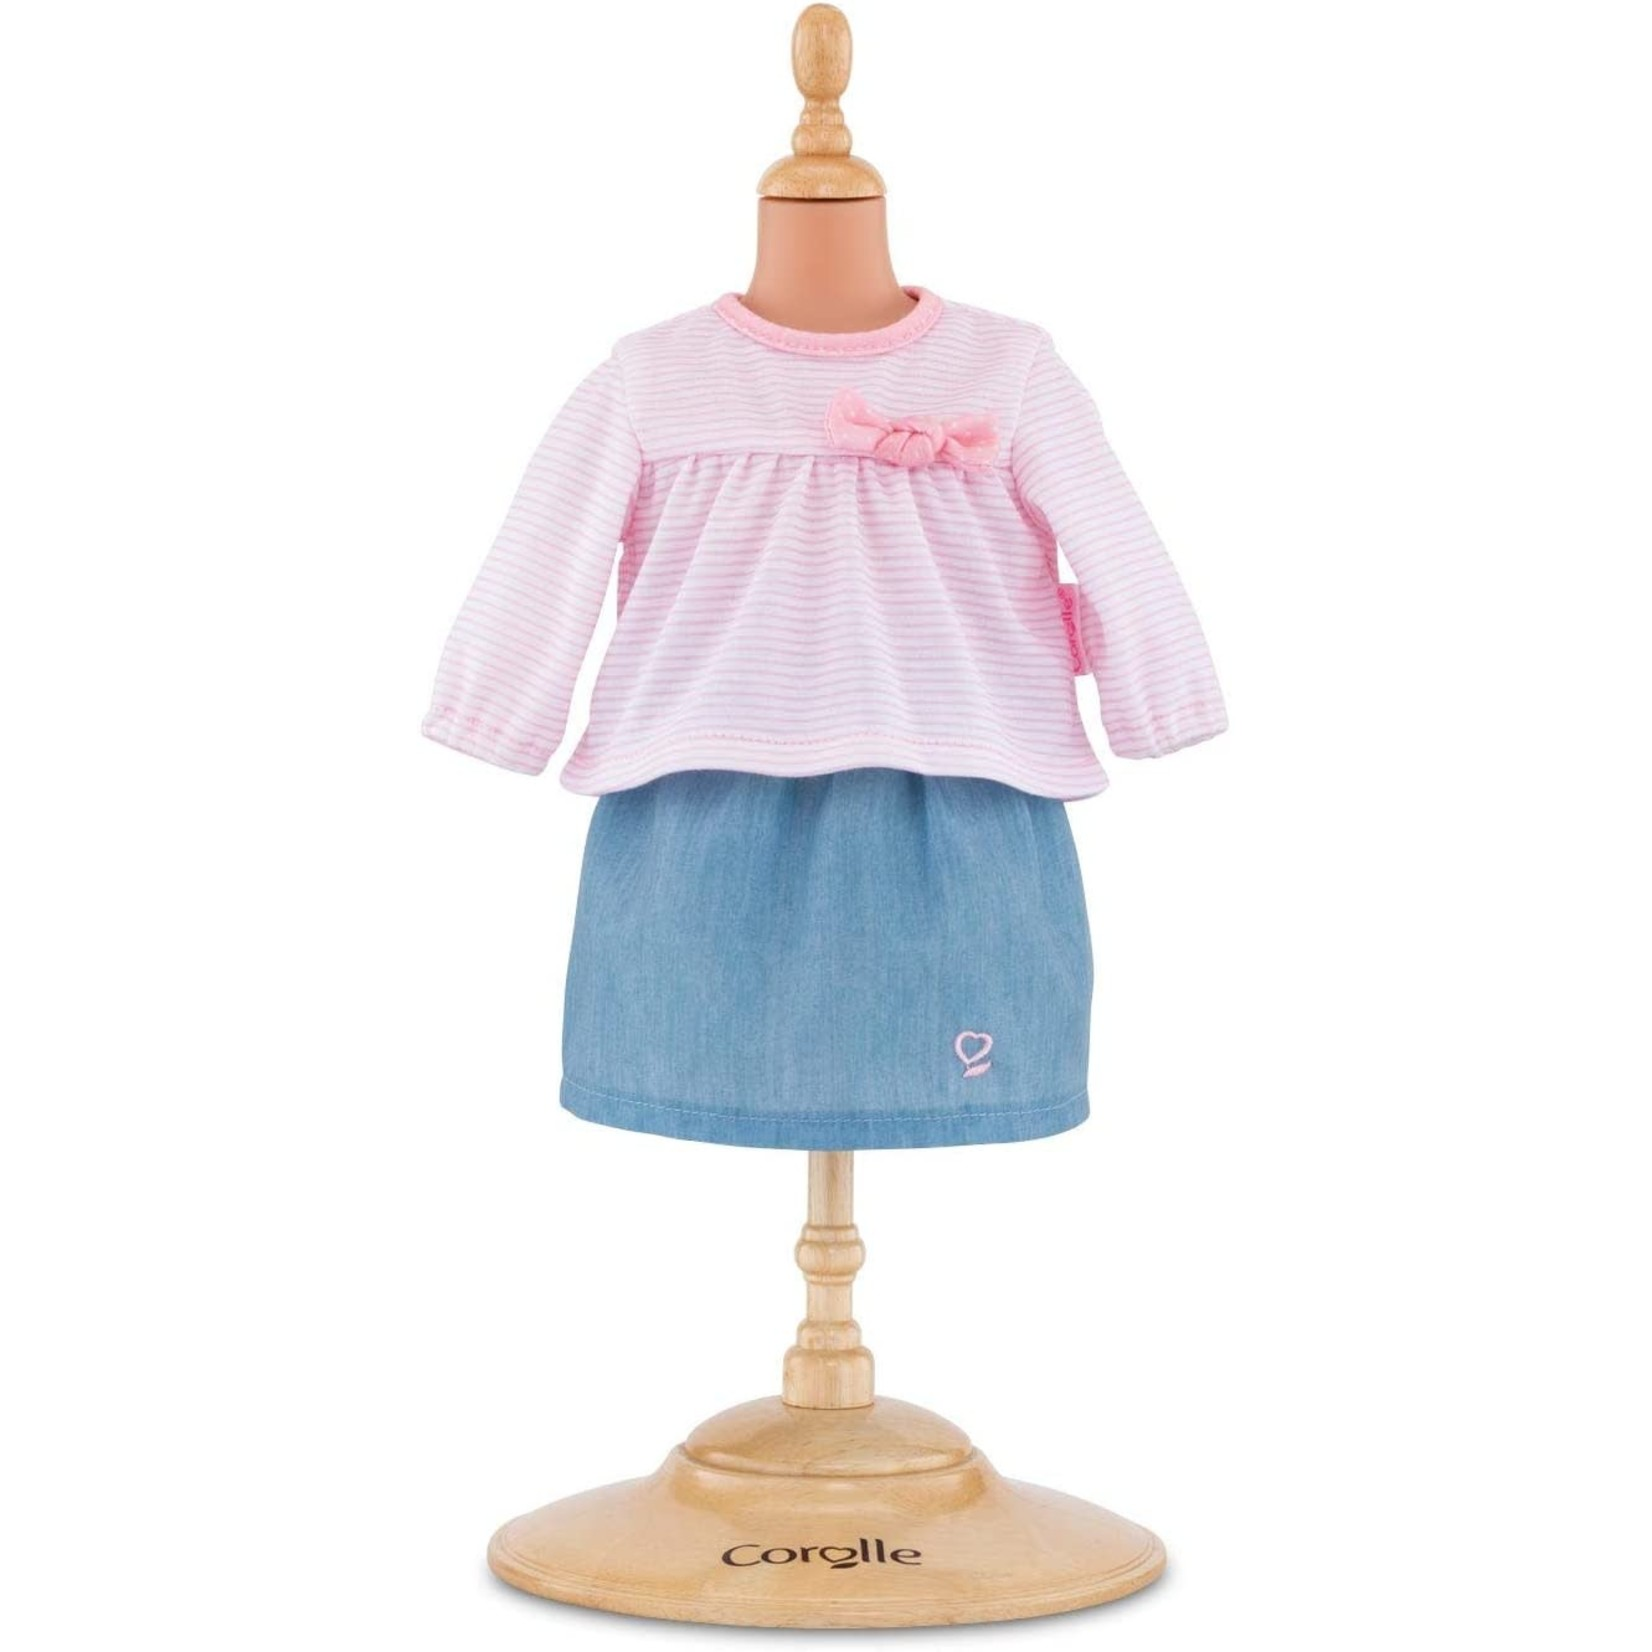 "COROLLE COROLLE TOP AND SKIRT (12"")"